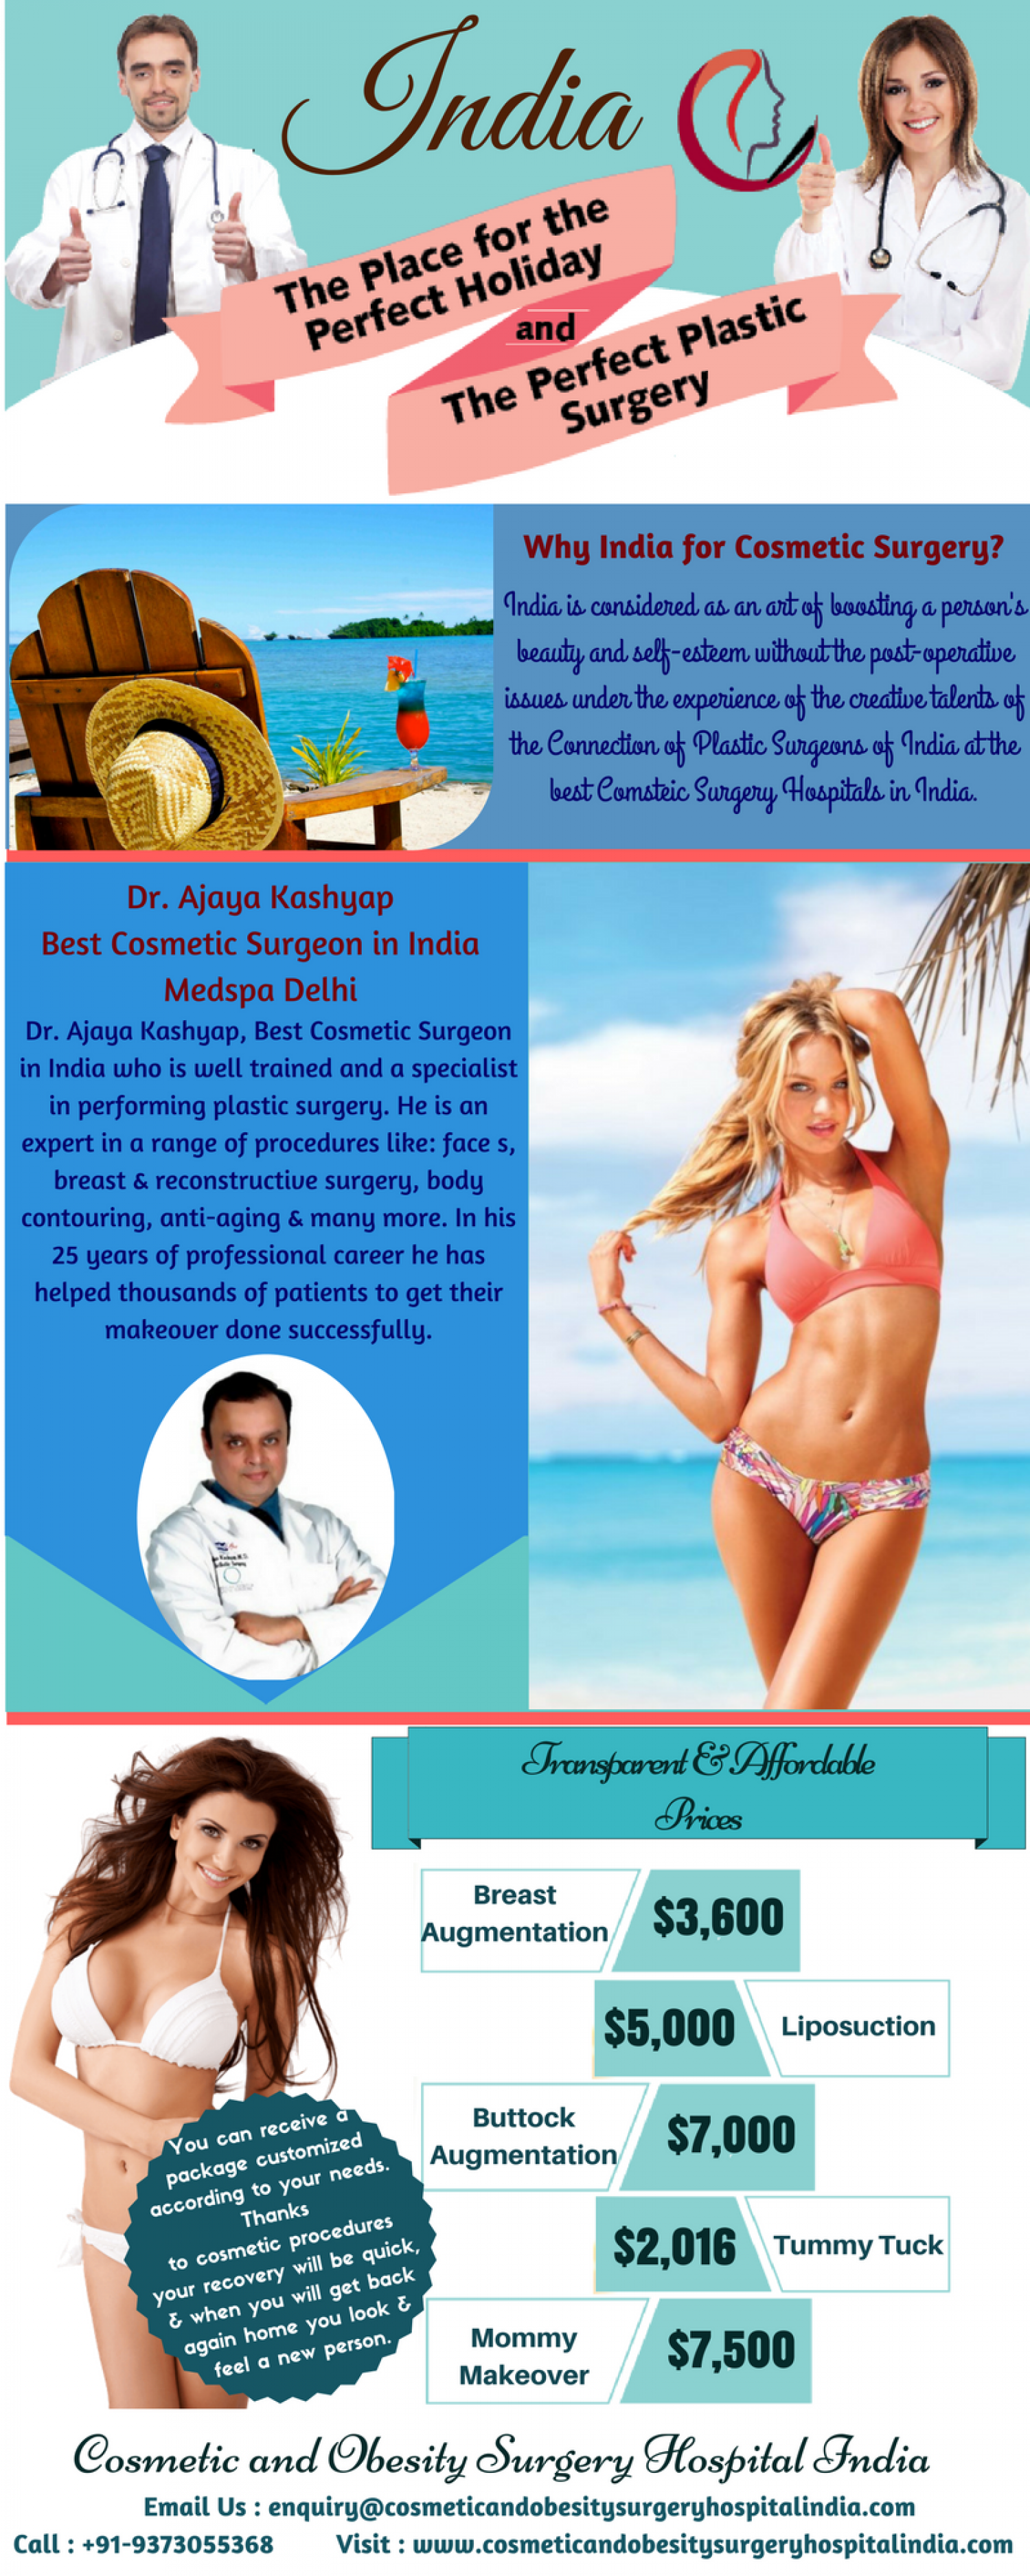 India the Place for Affordable Cosmetic Surgery & Perfect Holidays Infographic